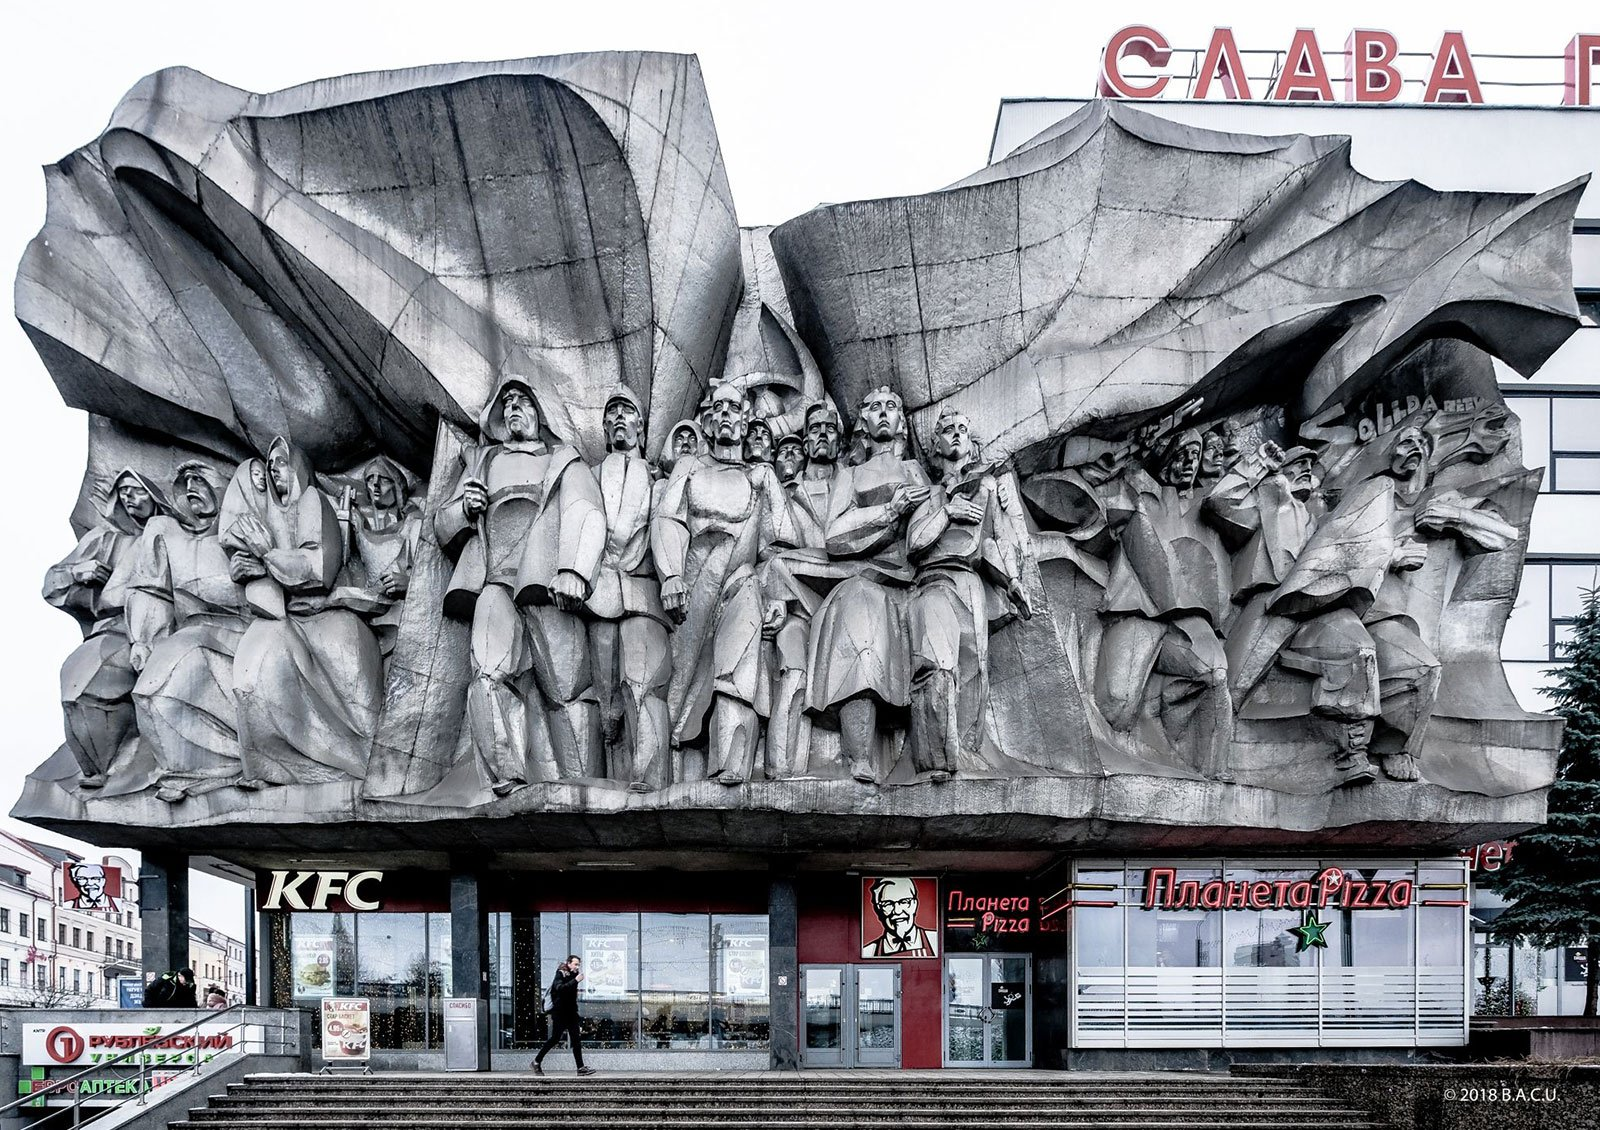 The other Odesa: hunting for socialist-modernist architectural gems in Ukraine's maritime city